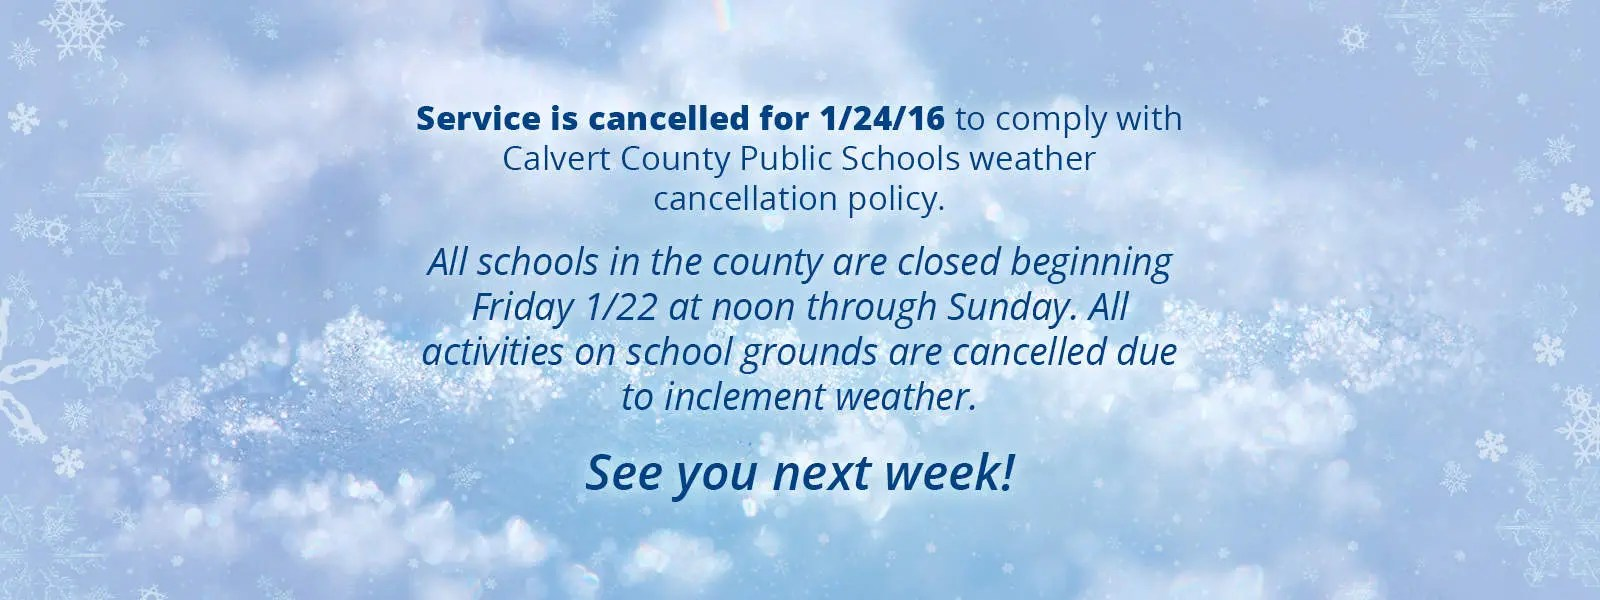 1/24/16 Sunday Service Cancelled